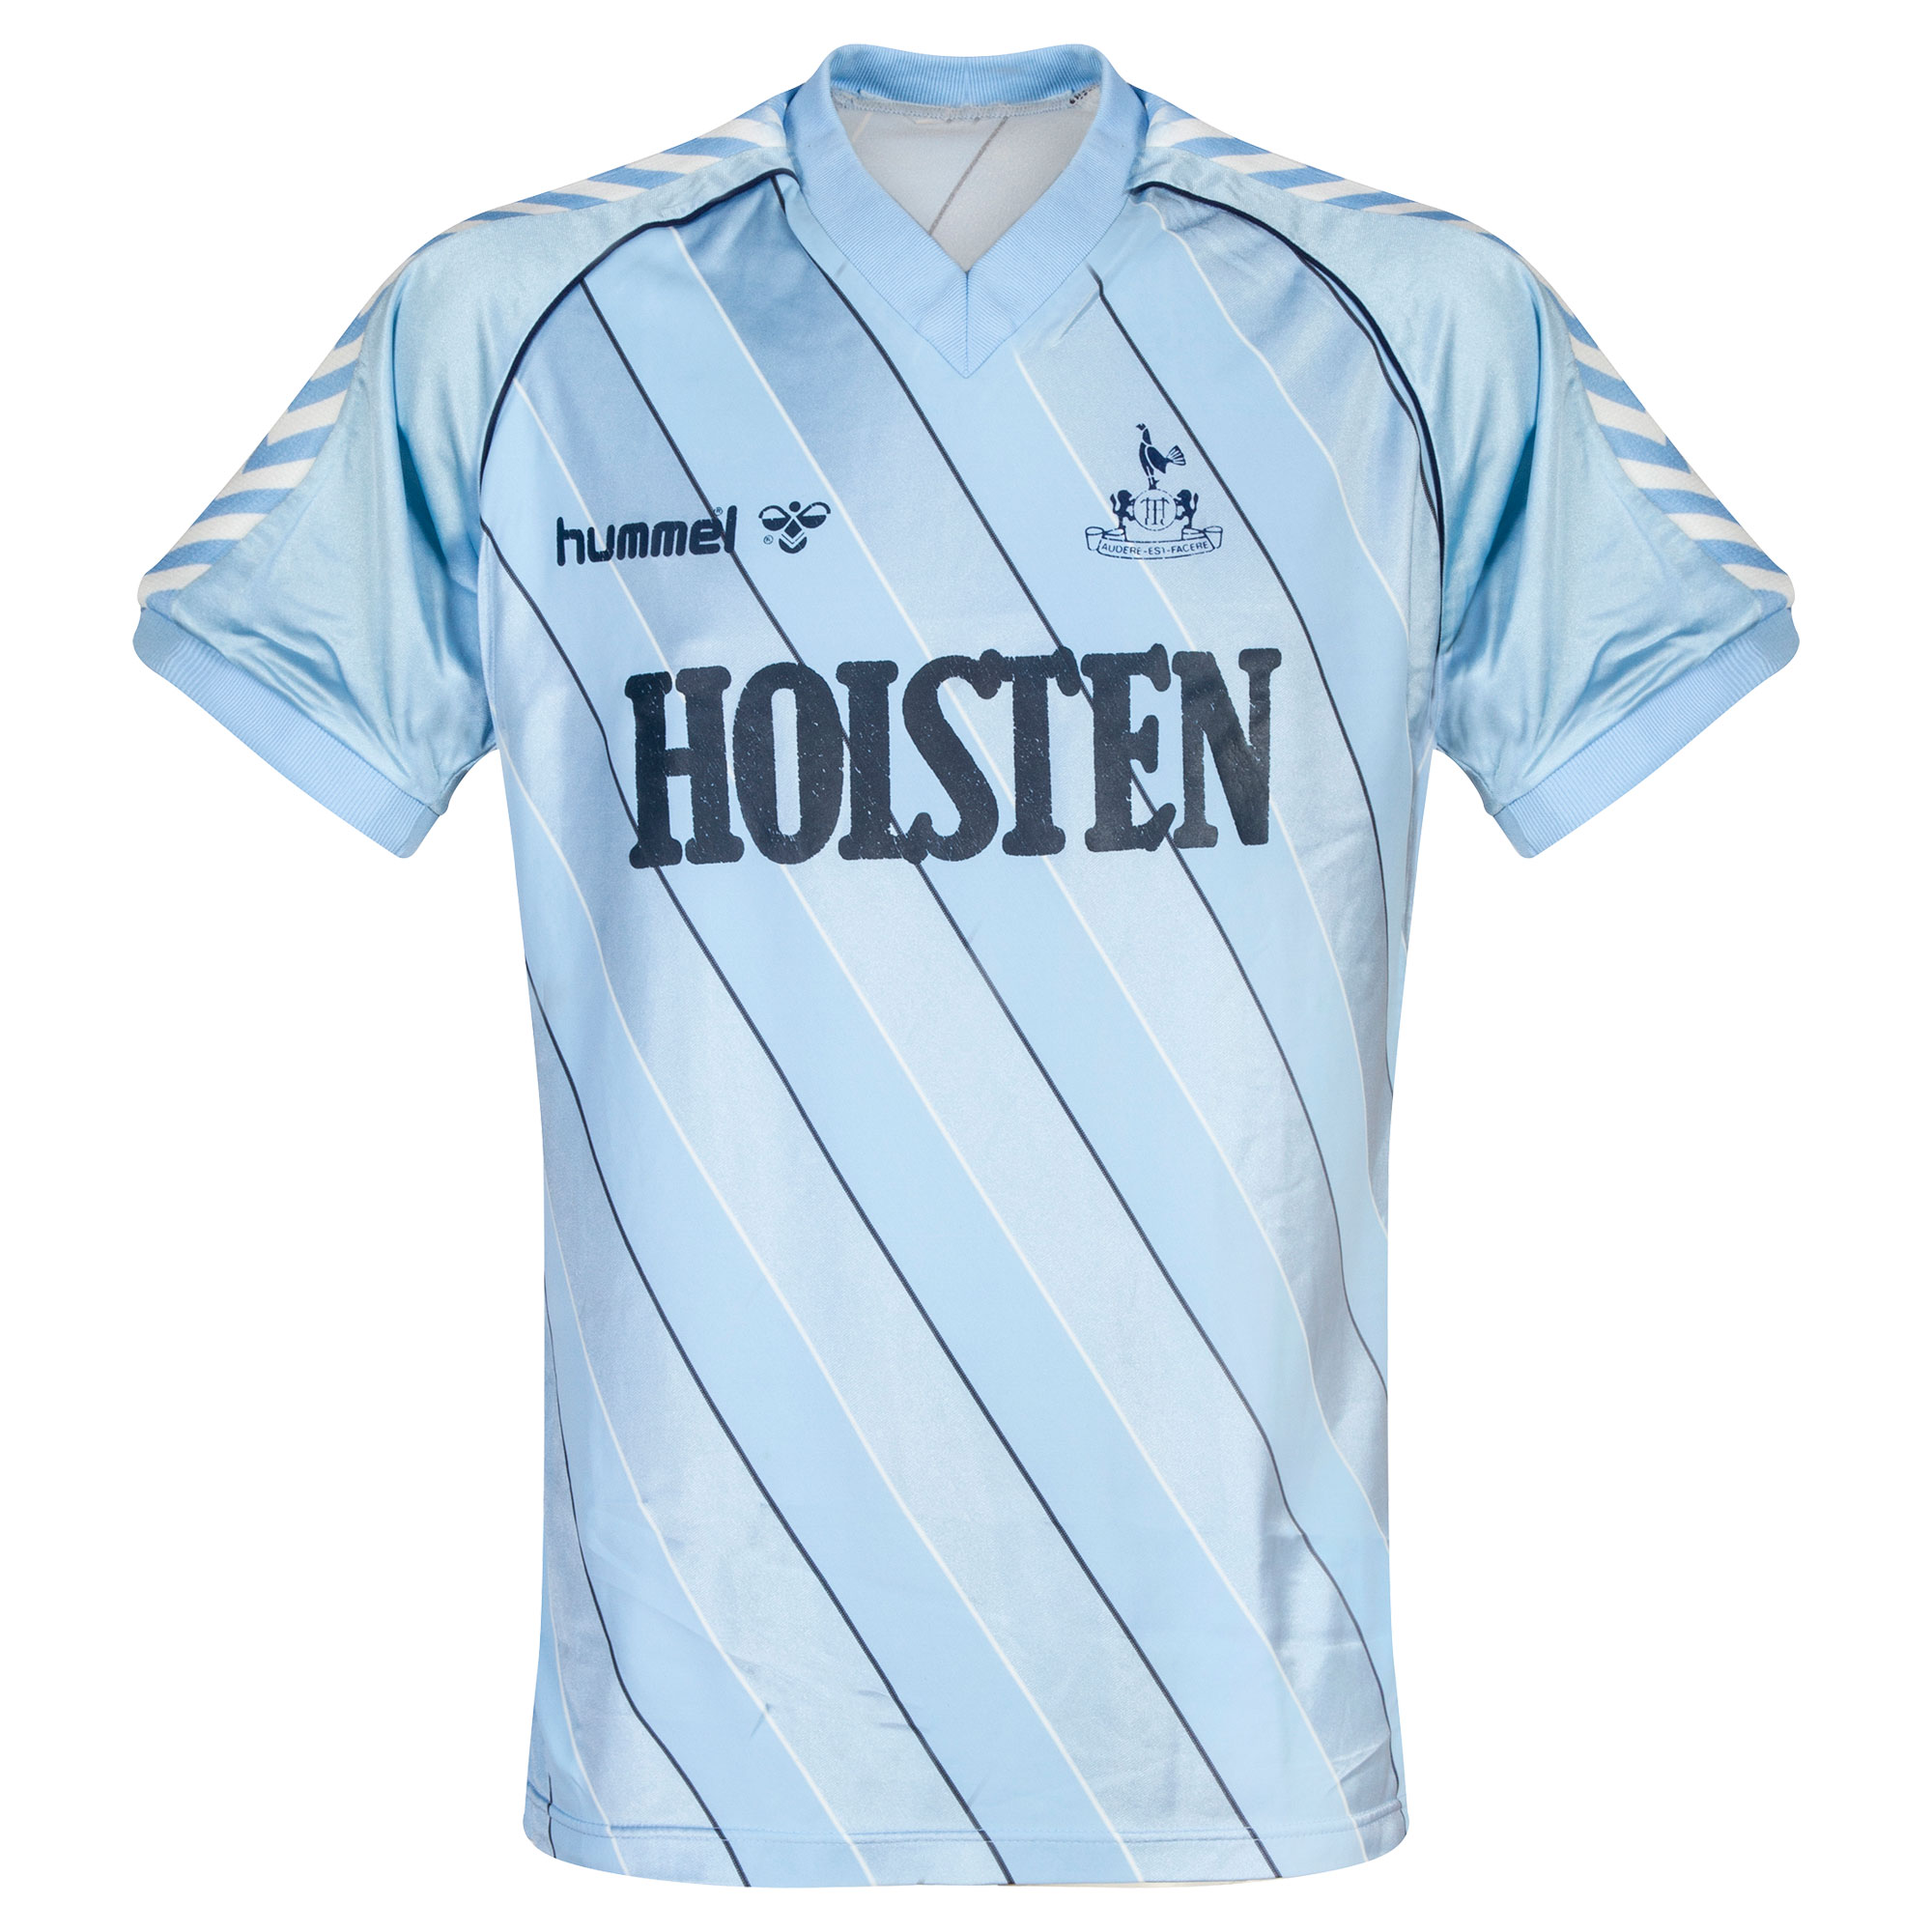 Hummel Tottenham Hotspur Away 1985-1987 Shirt - USED Condition (Good) - Size Medium